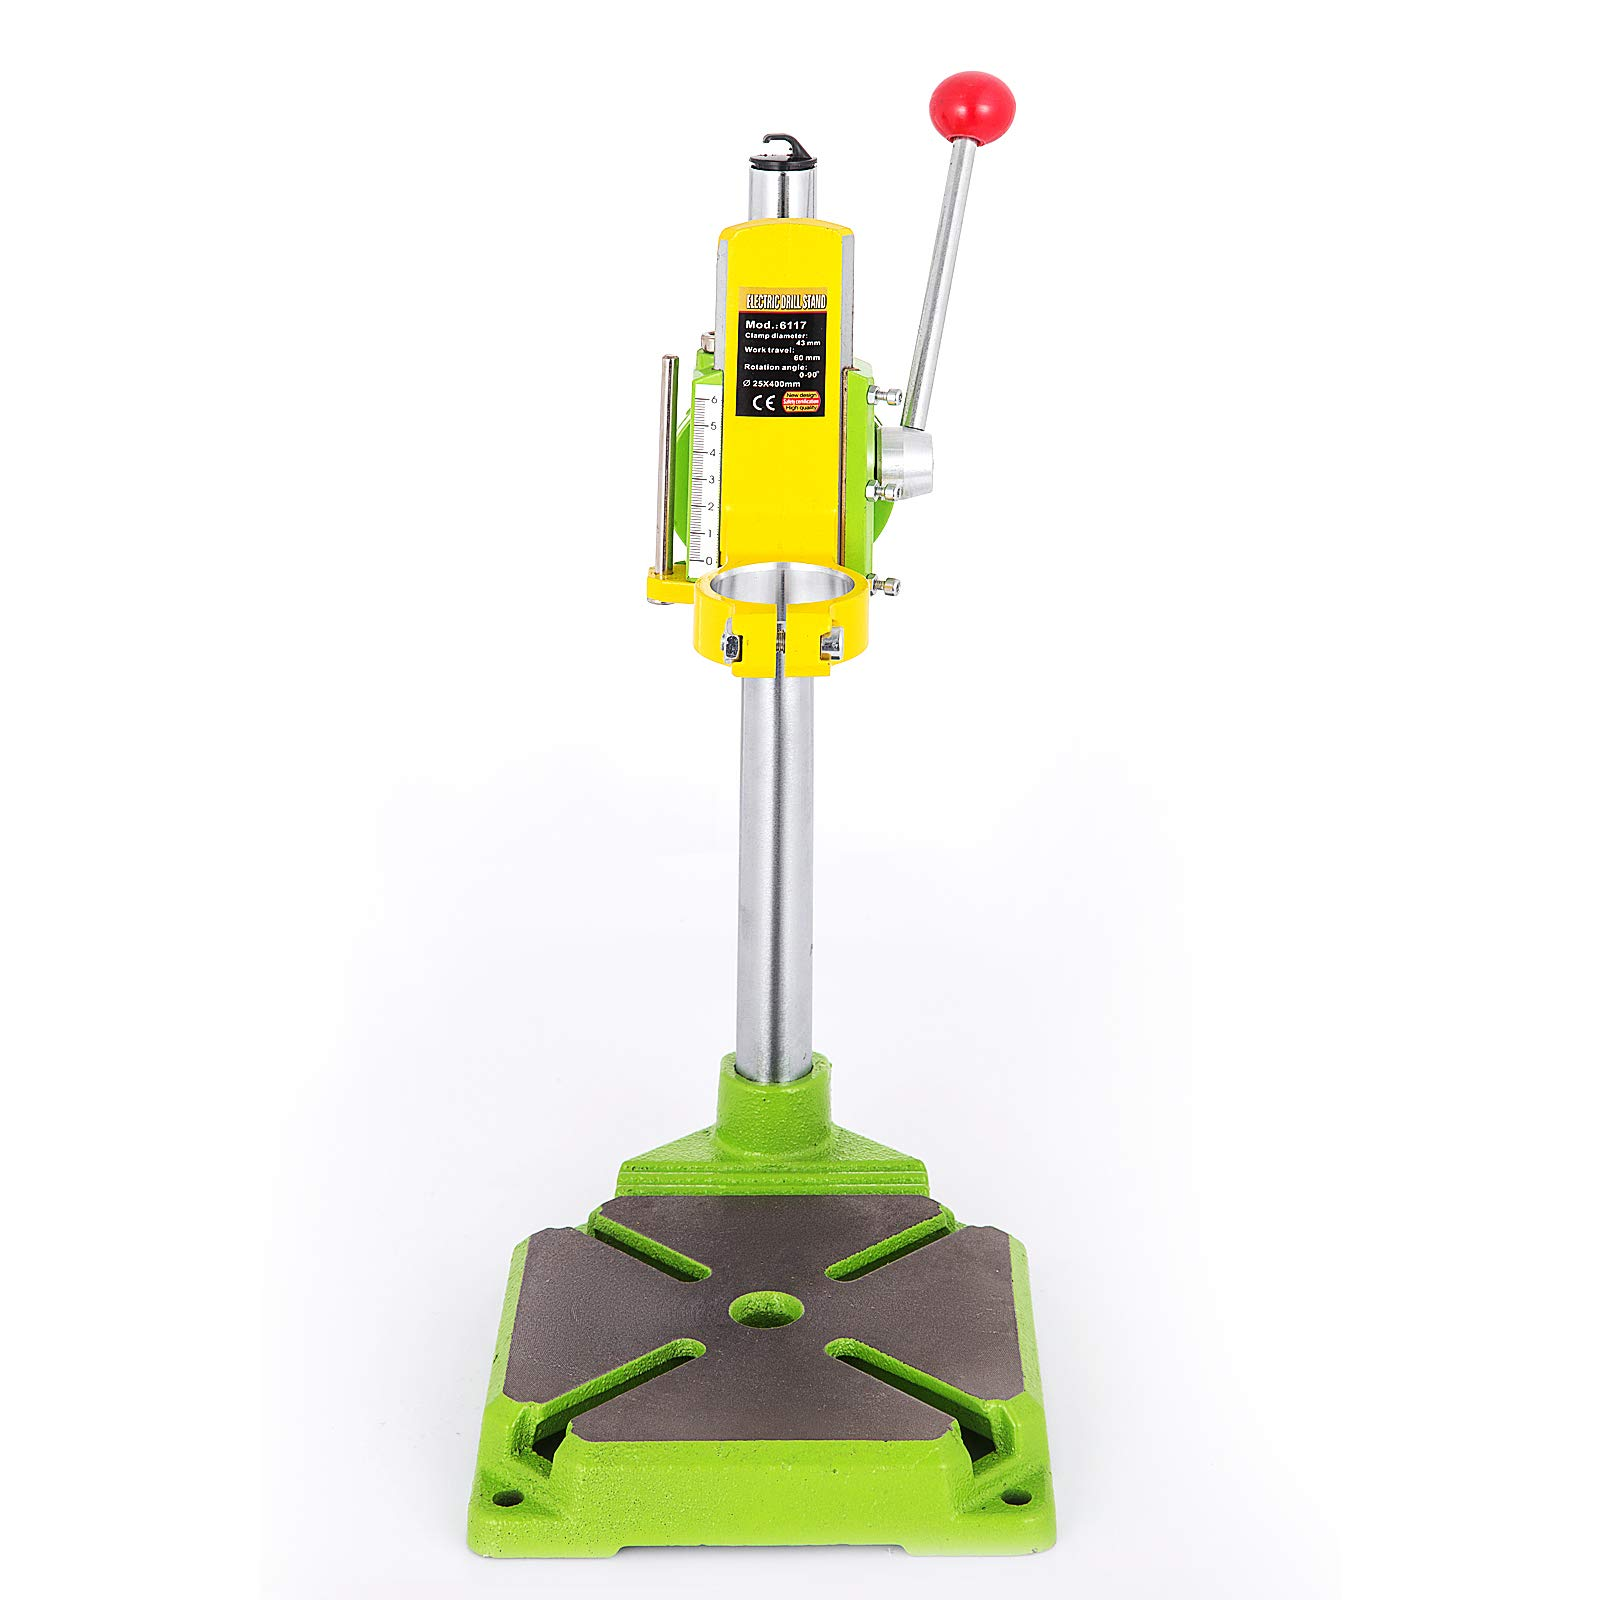 Happybuy Drill Press Stand 90 Degrees Rotary Drill Stand Holder 60mm Work Travel Repair Tool Clamp by Happybuy (Image #3)